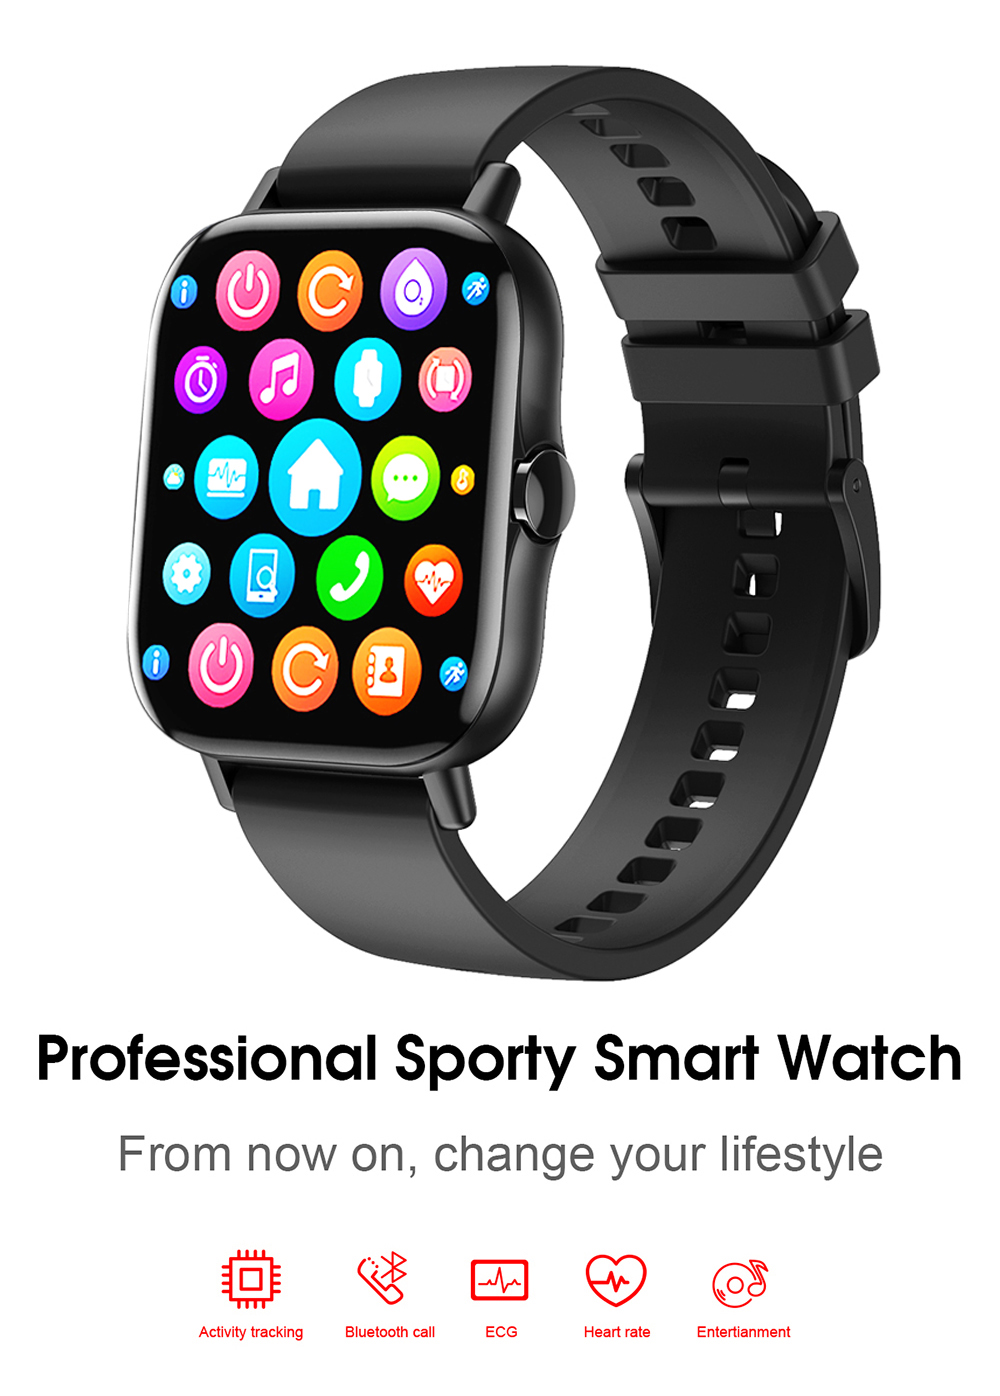 Hb730b4e92c364a9f9c5dd7b7389e3811B For Xiaomi IOS Apple Phone 1.78inch Smart Watch Android Men IP68 Waterproof Full Touch Woman Smartwatch Women 2021 Answer Call